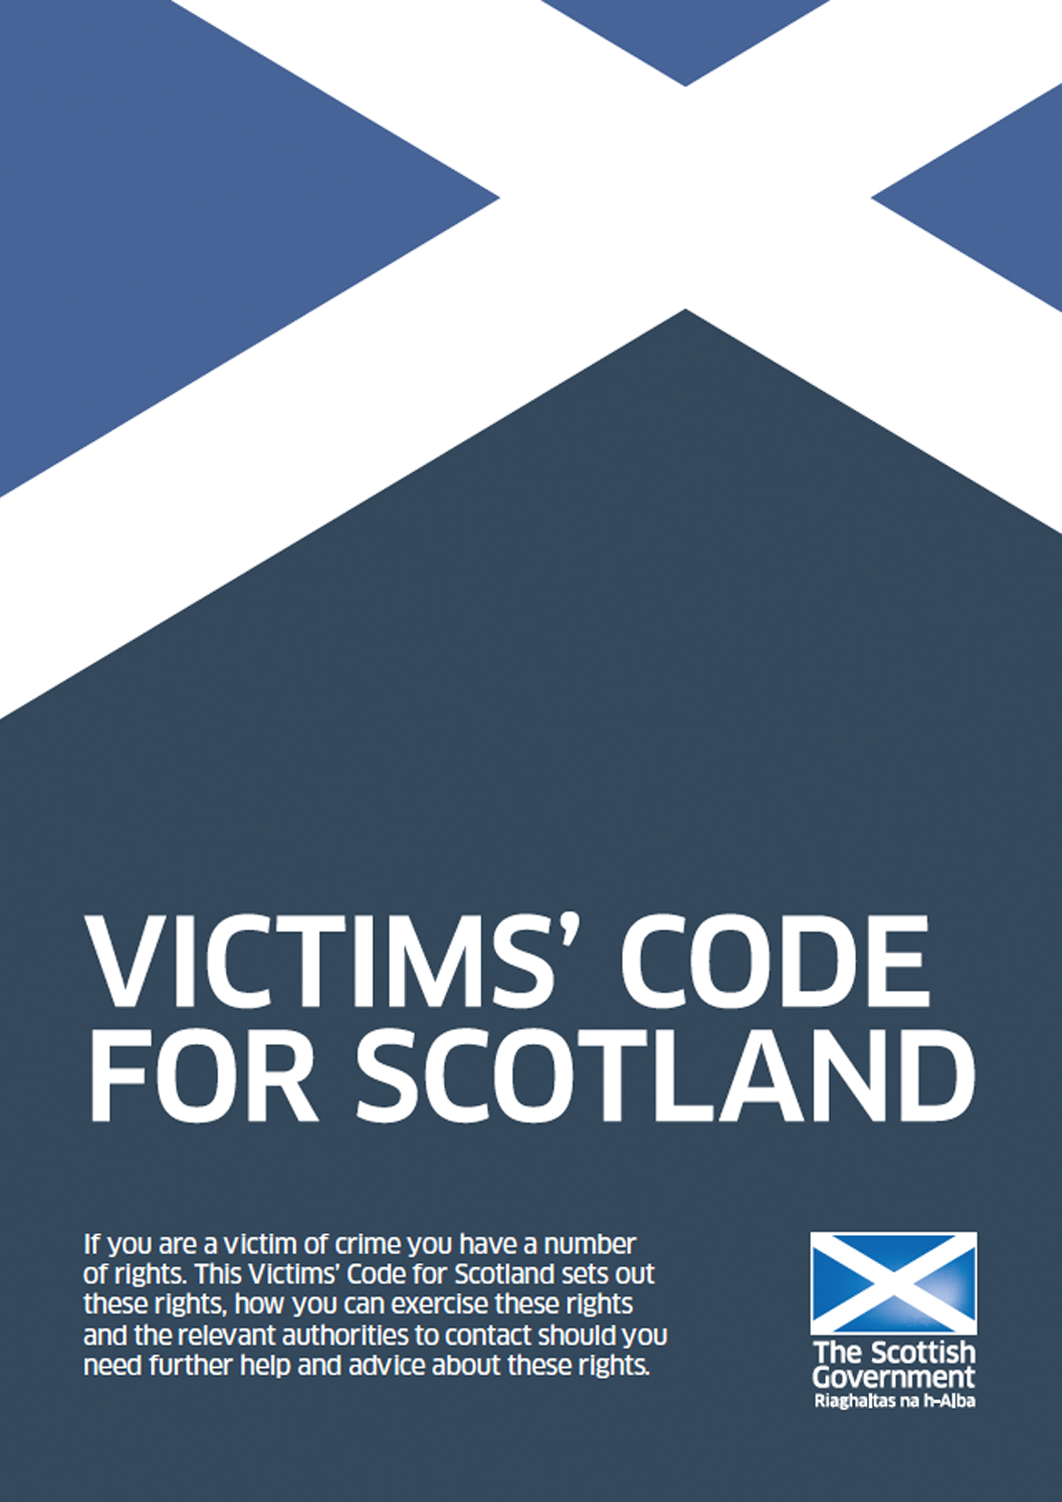 Victim Code for Scotland - Cover image